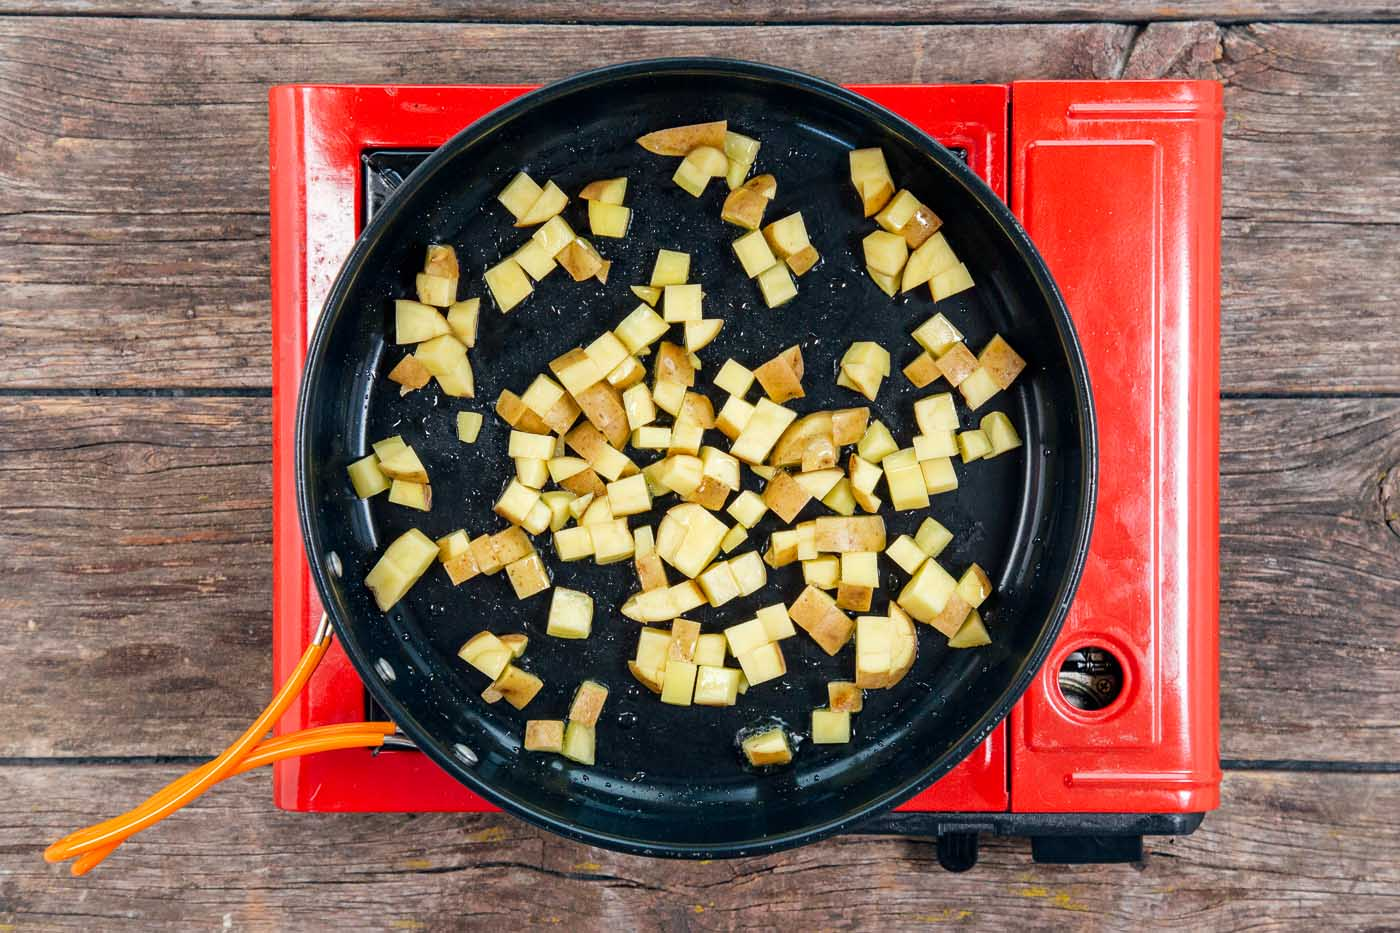 Cubed potatoes in a skillet for a breakfast scramble